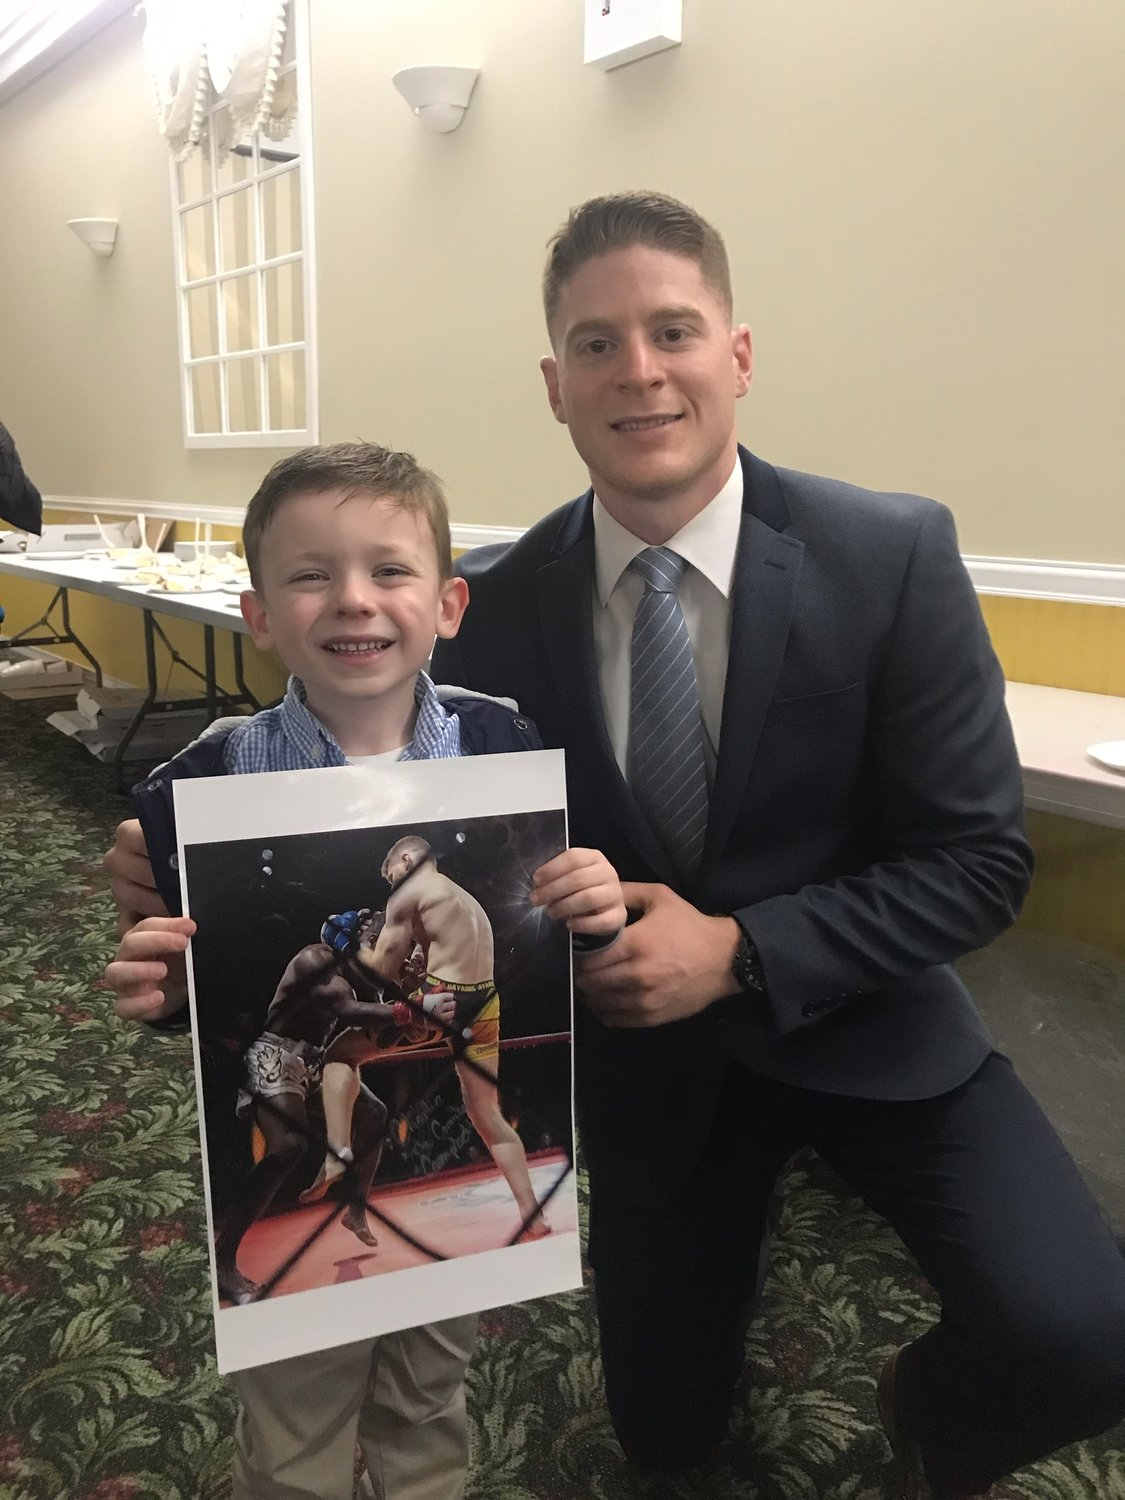 Campbell, right, is a former Lynbrook Titans wrestler, and spent time with current Titans wrester Jack McAssey, 6, at the program's annual awards ceremony in March.